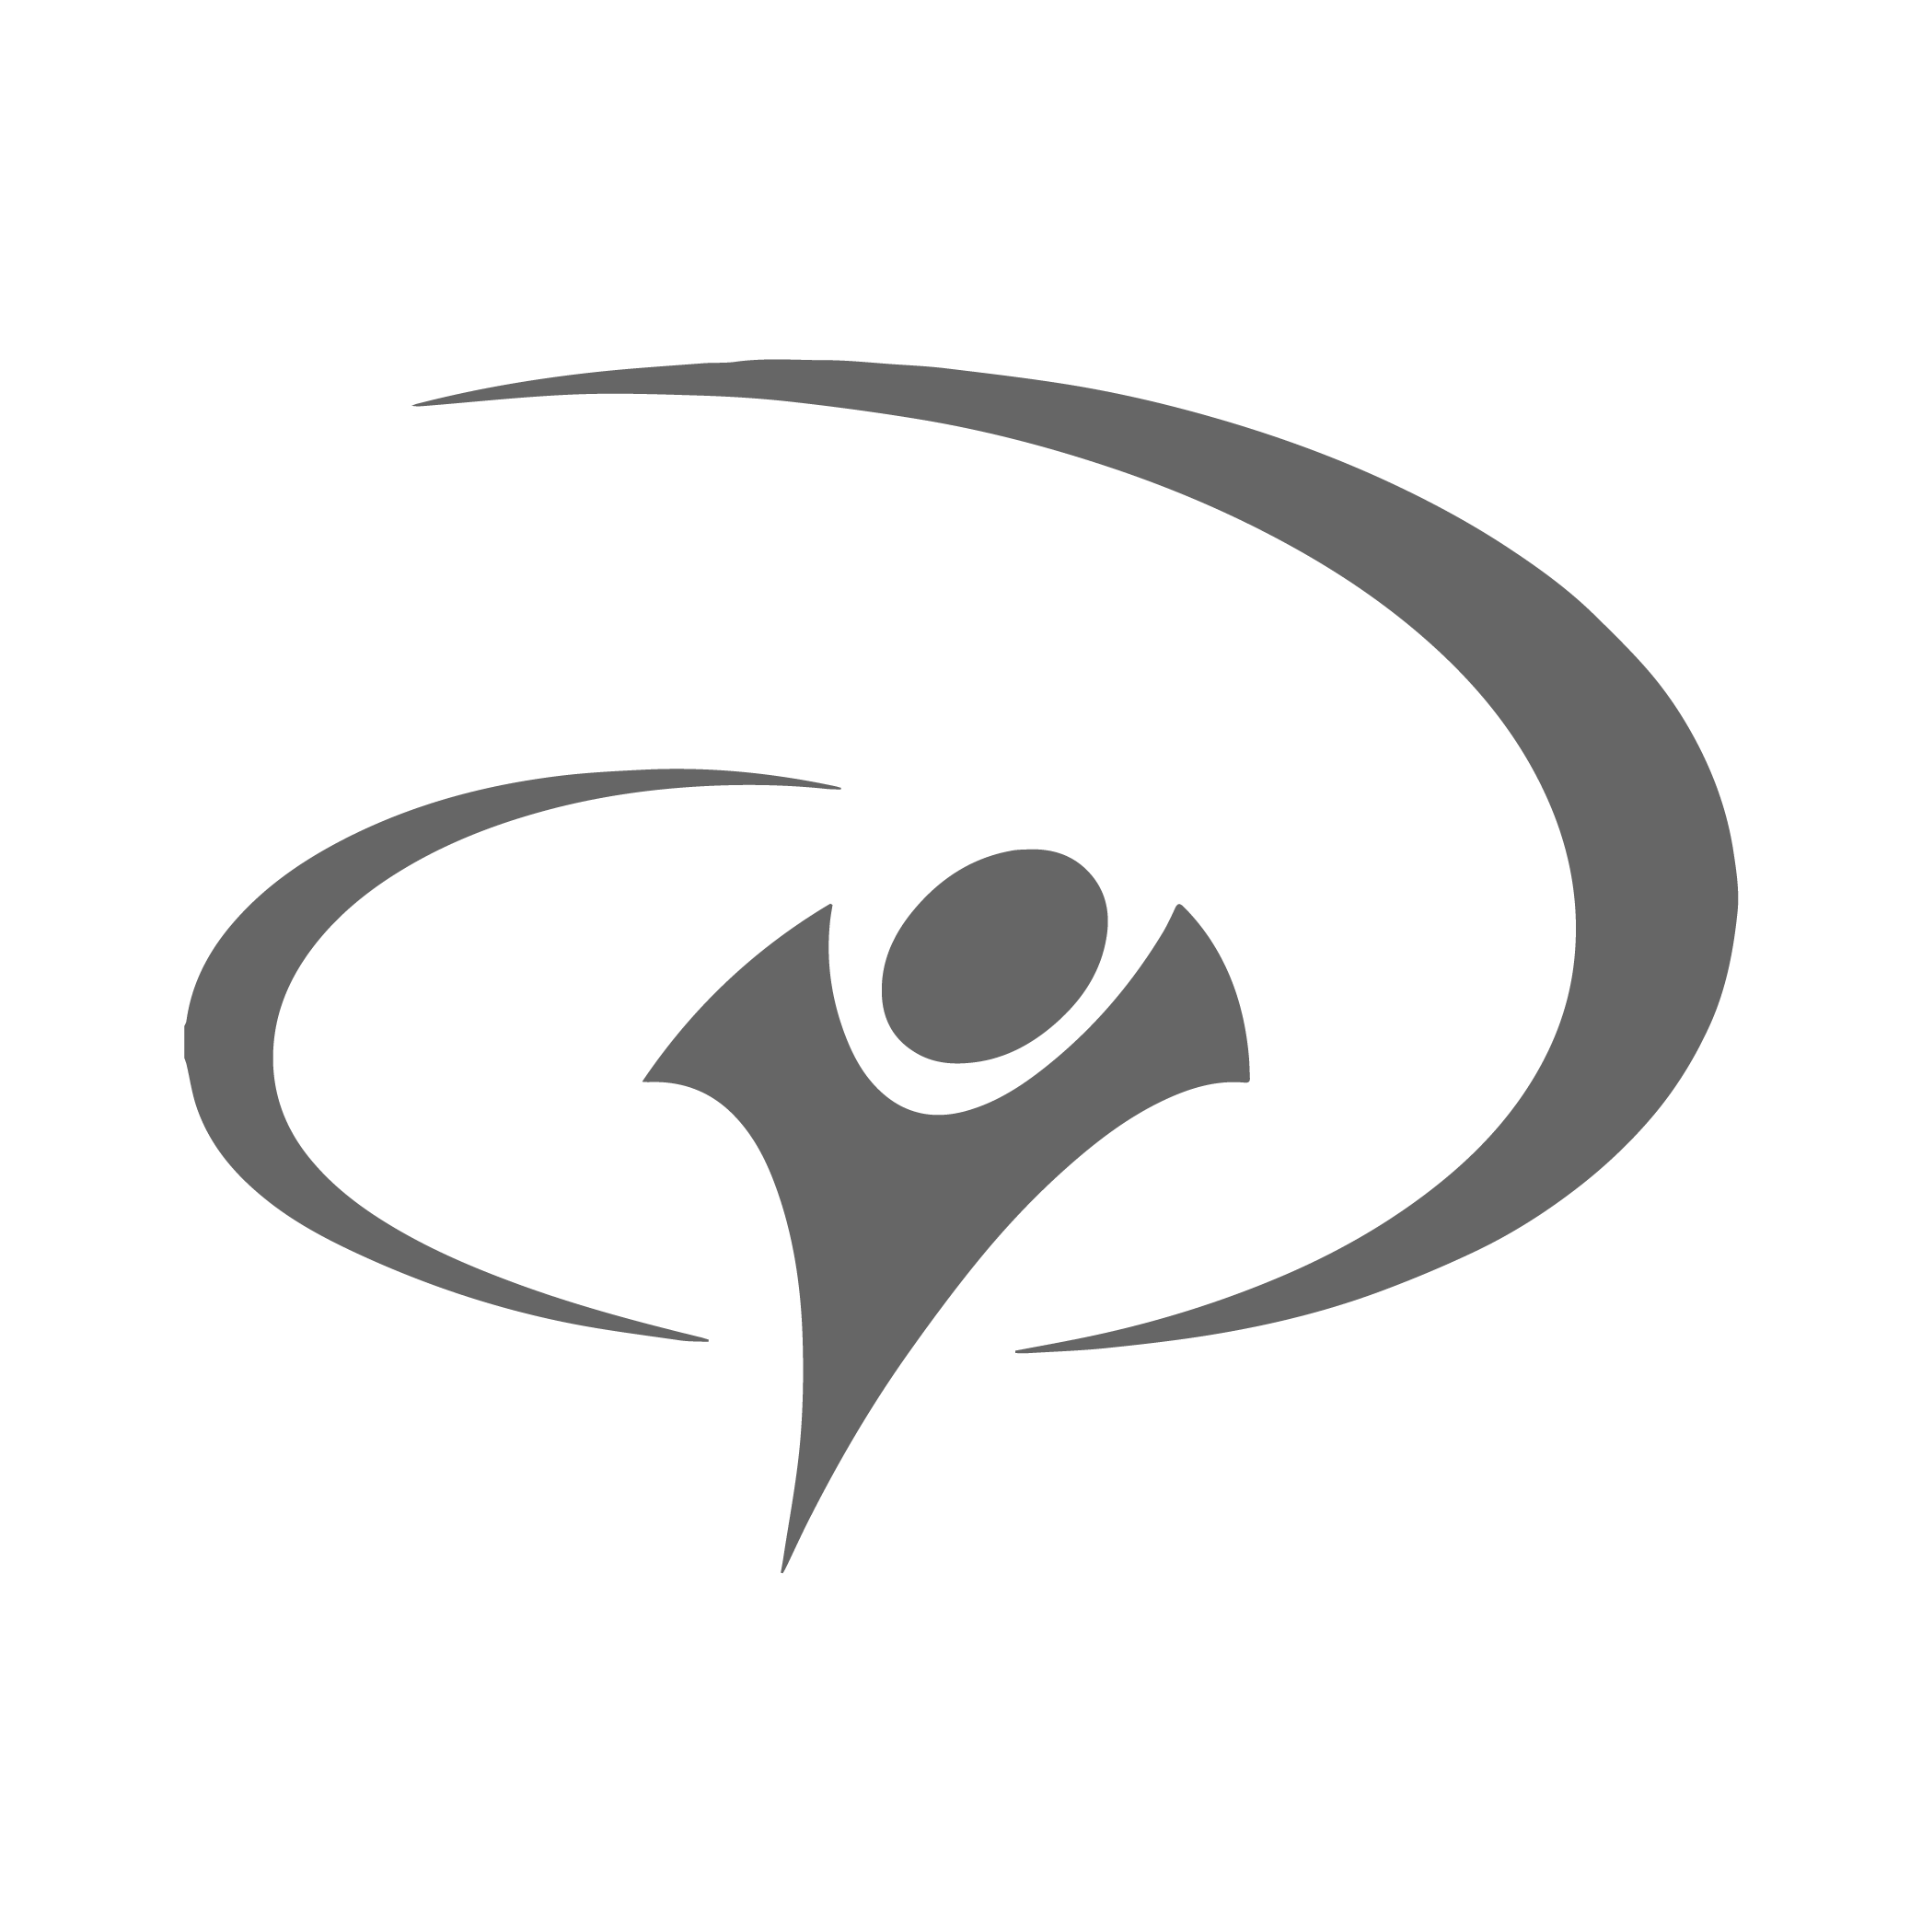 YWAM grey LOGO Transparent-01.png